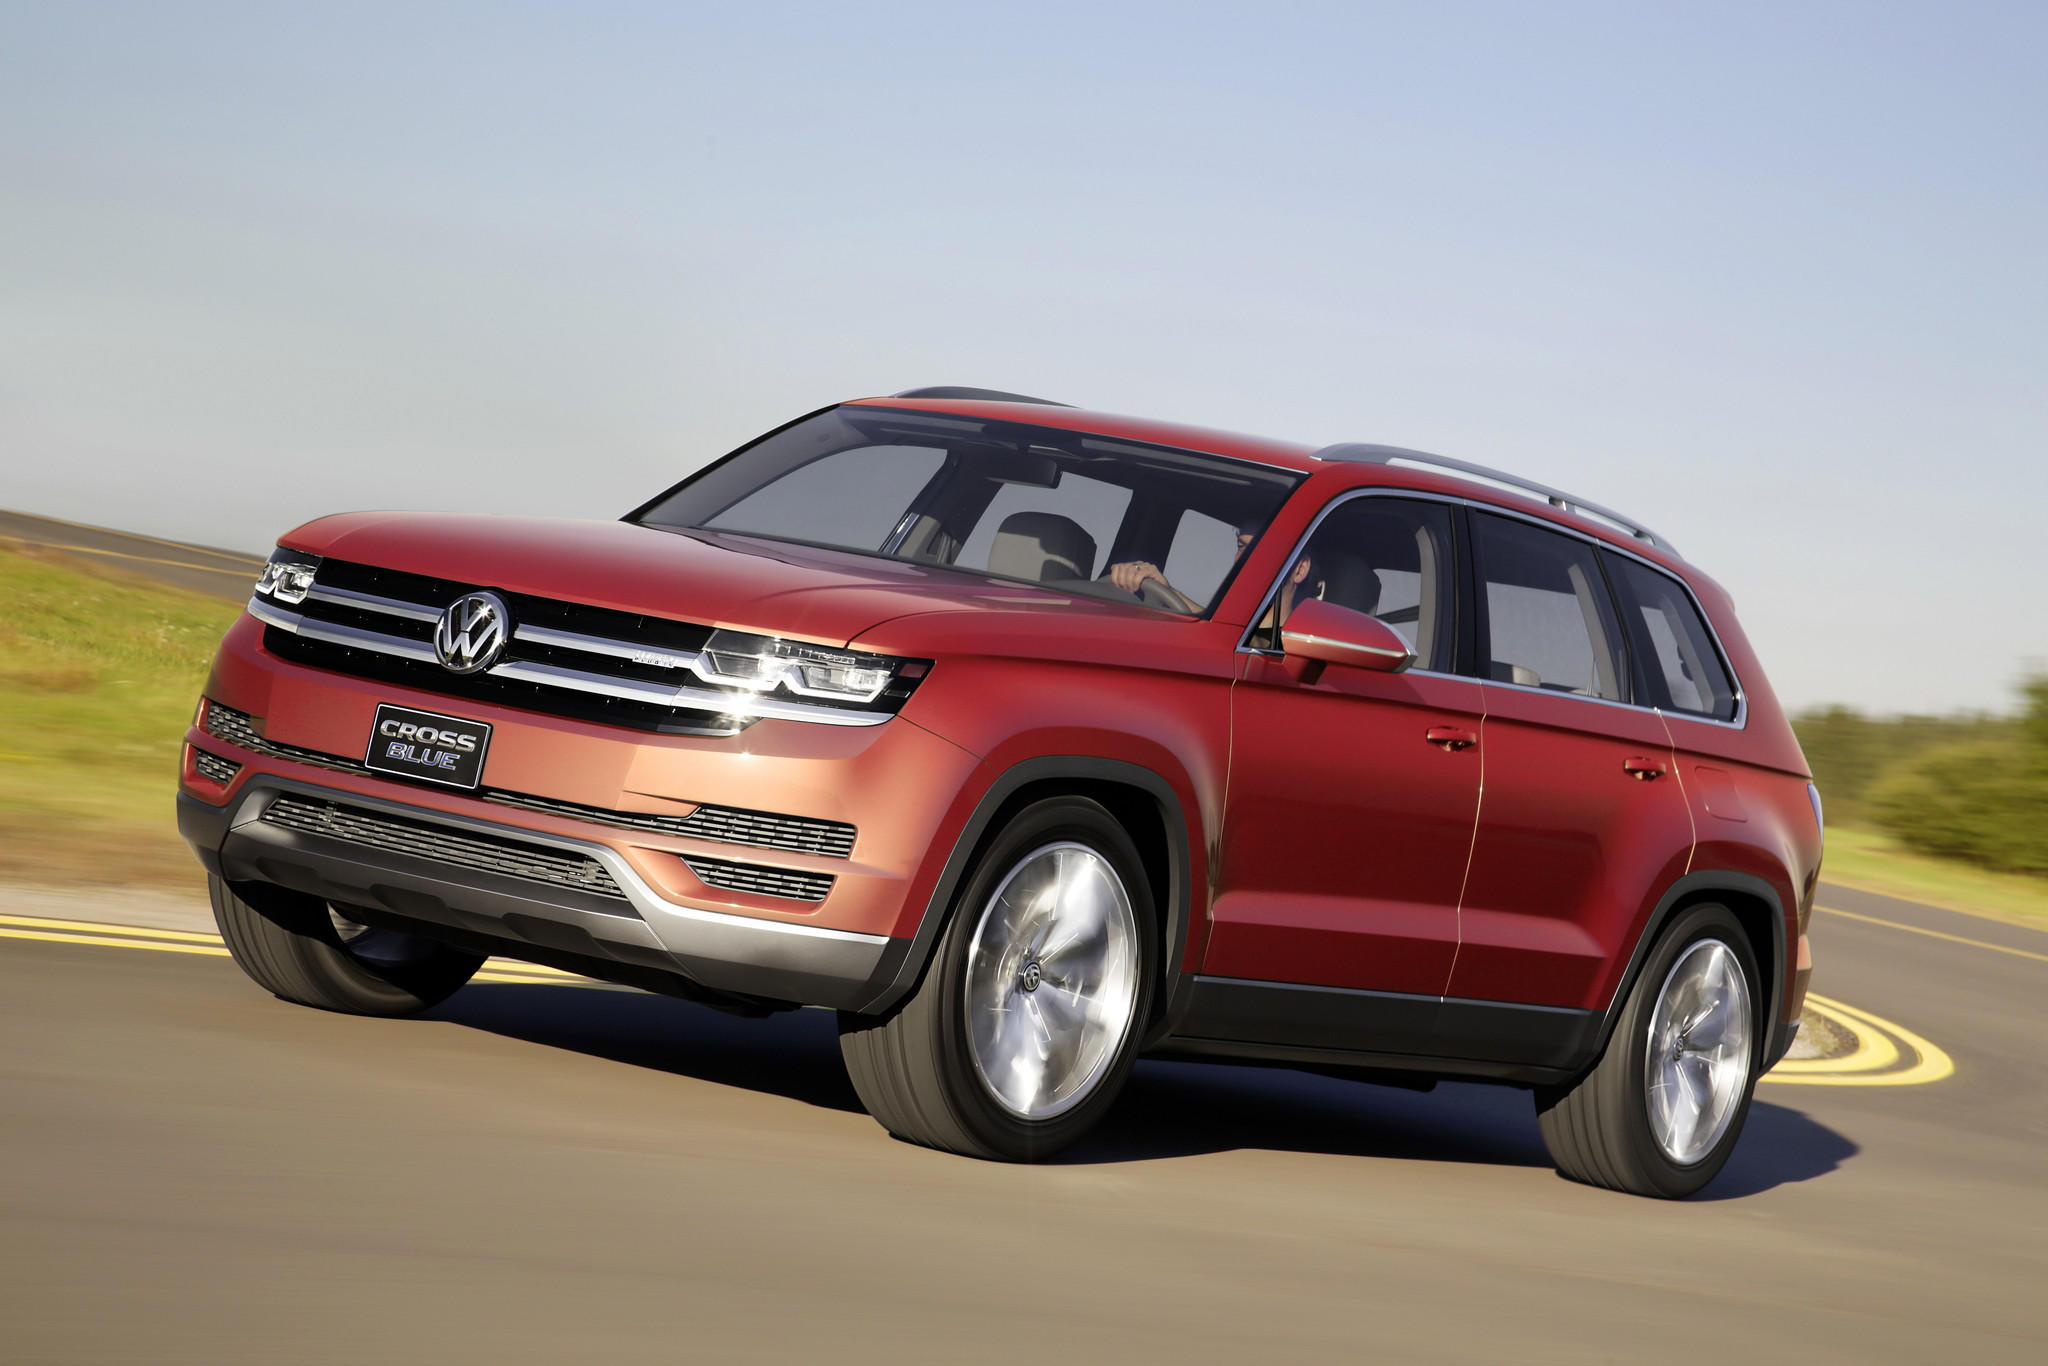 2014 detroit auto show volkswagen reveals plans for mid size suv latimes. Black Bedroom Furniture Sets. Home Design Ideas